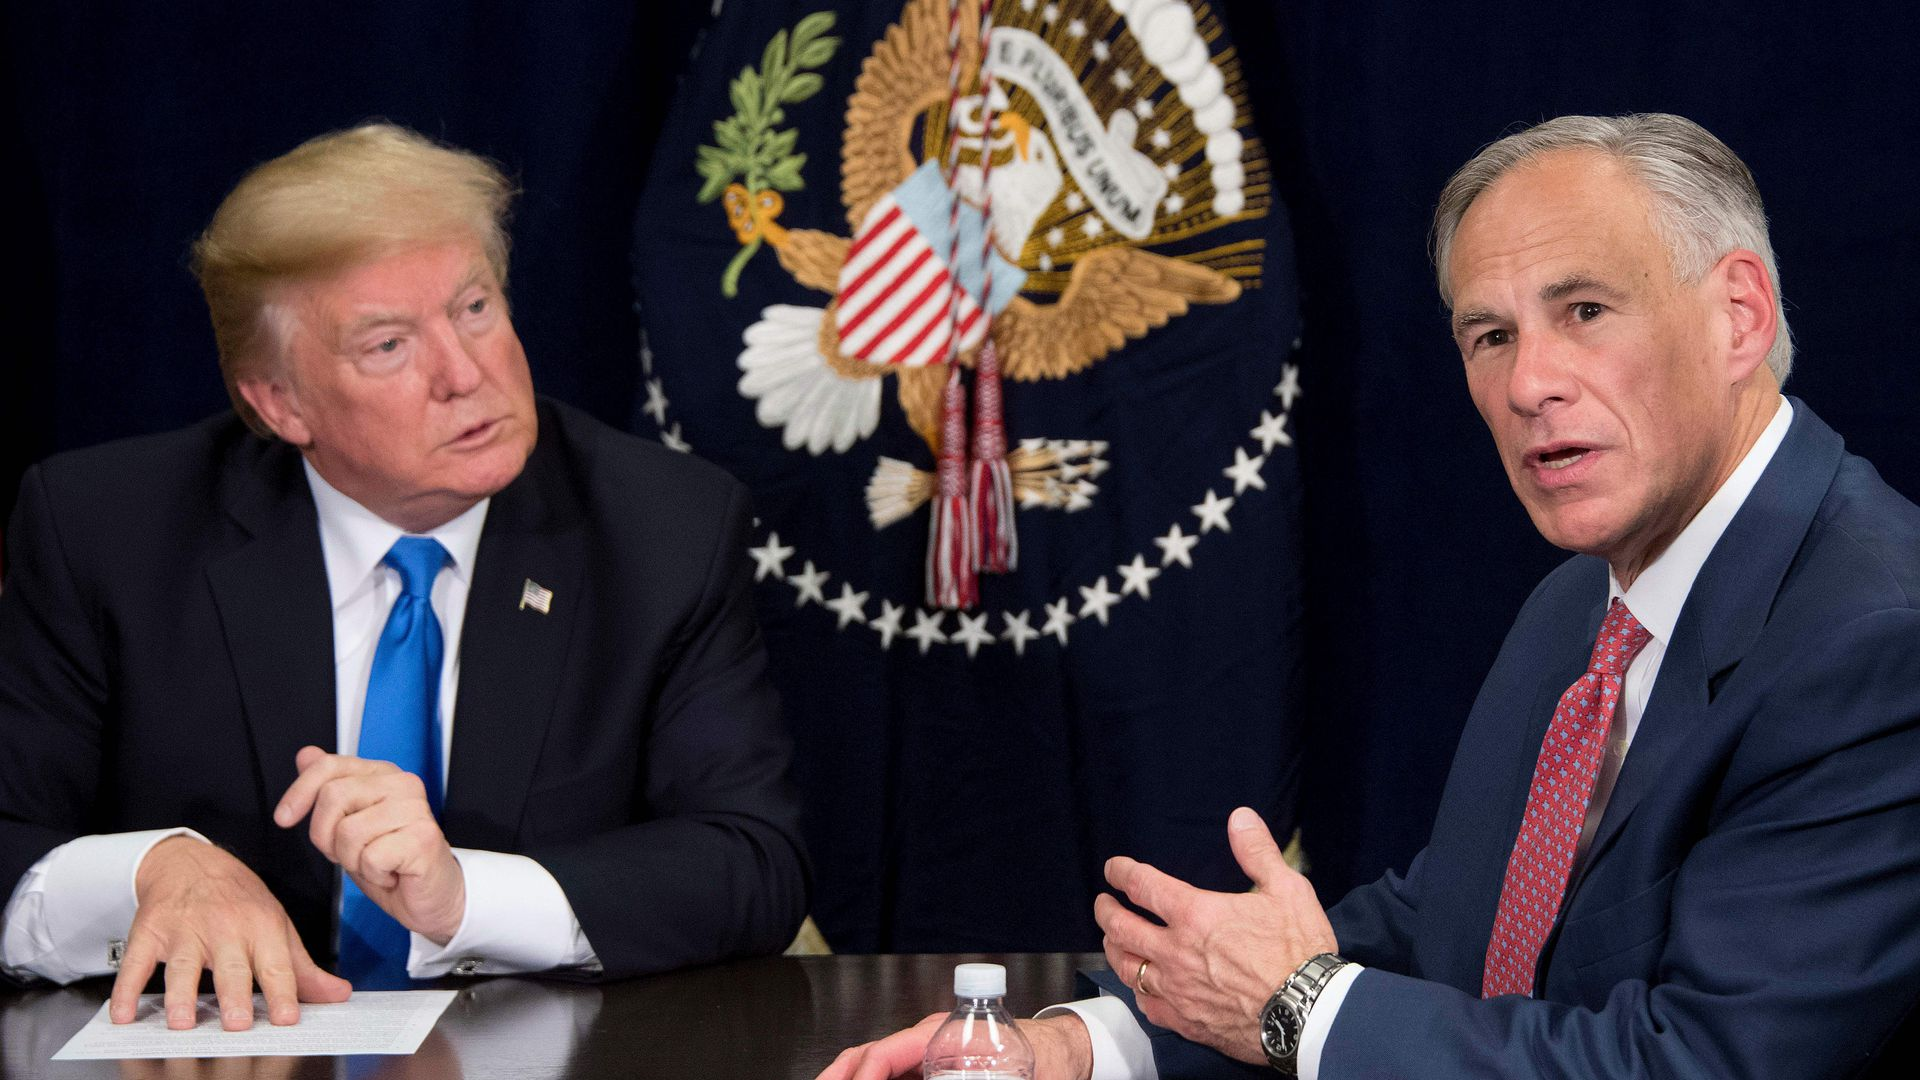 Texas Governor Greg Abbott sitting down and talking to President Donald Trump